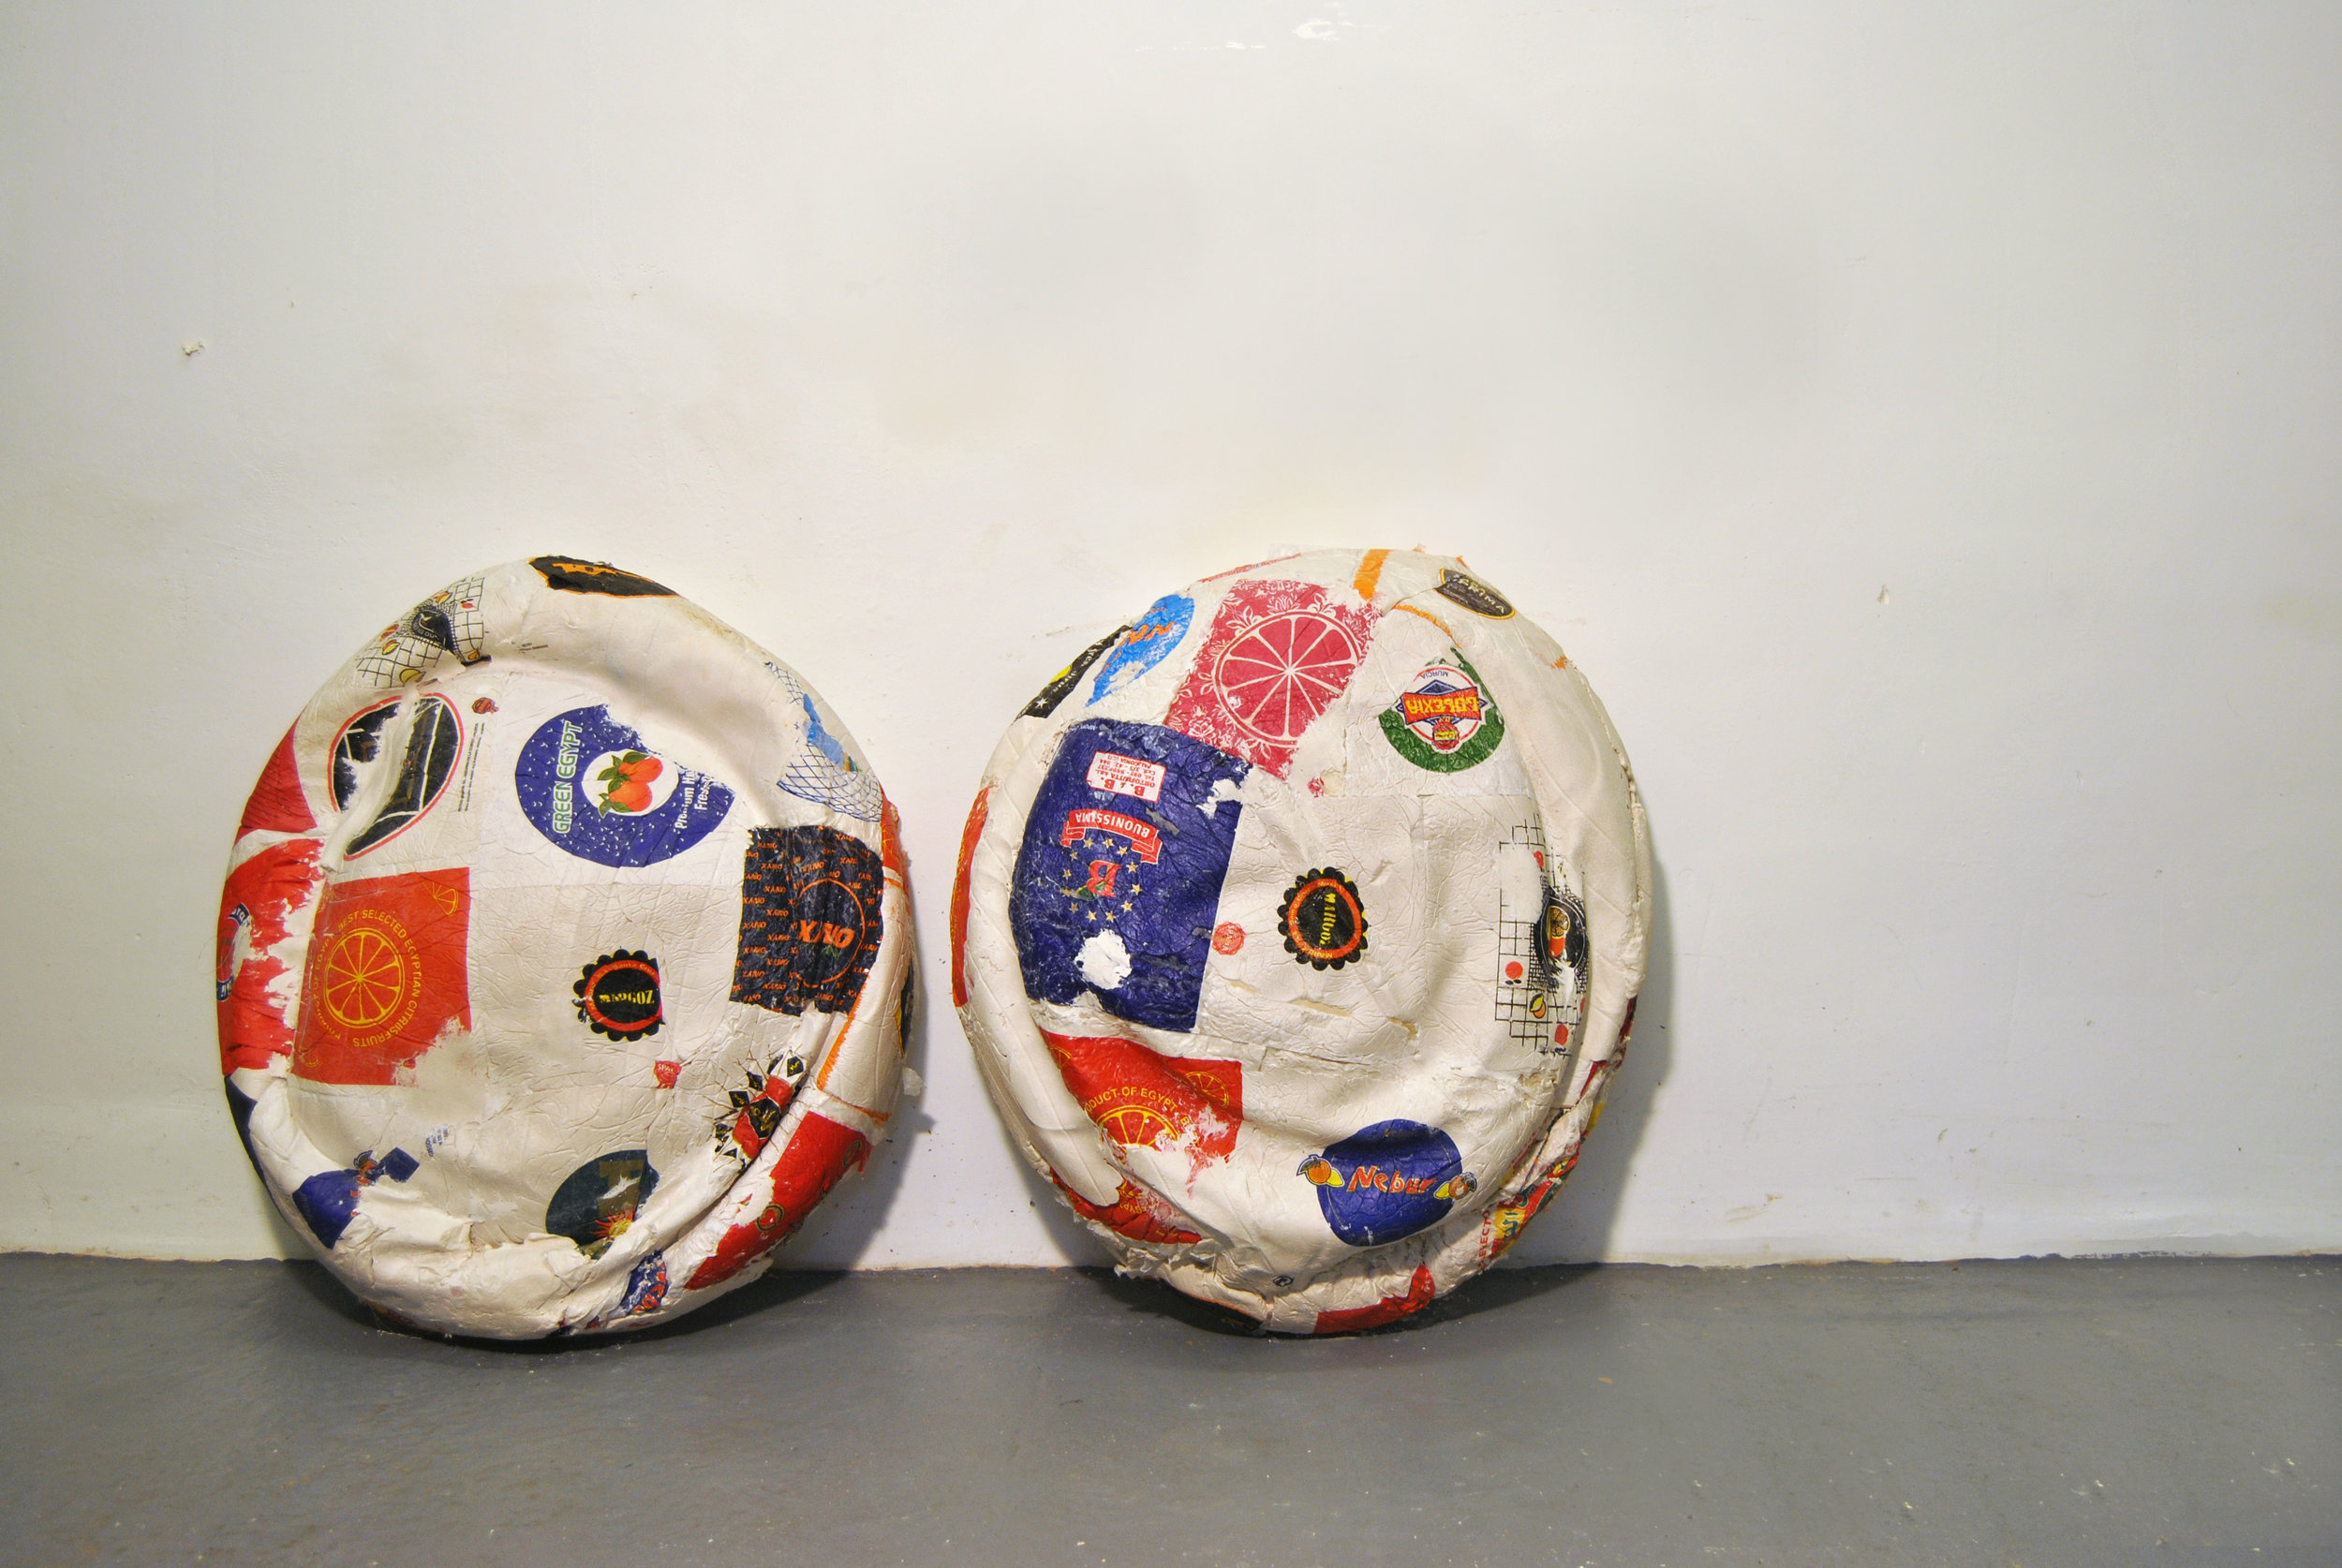 Citrus Wrapper Mounds No. 1 & 2, Citrus Wrappers, Thread, Plaster, November 2015